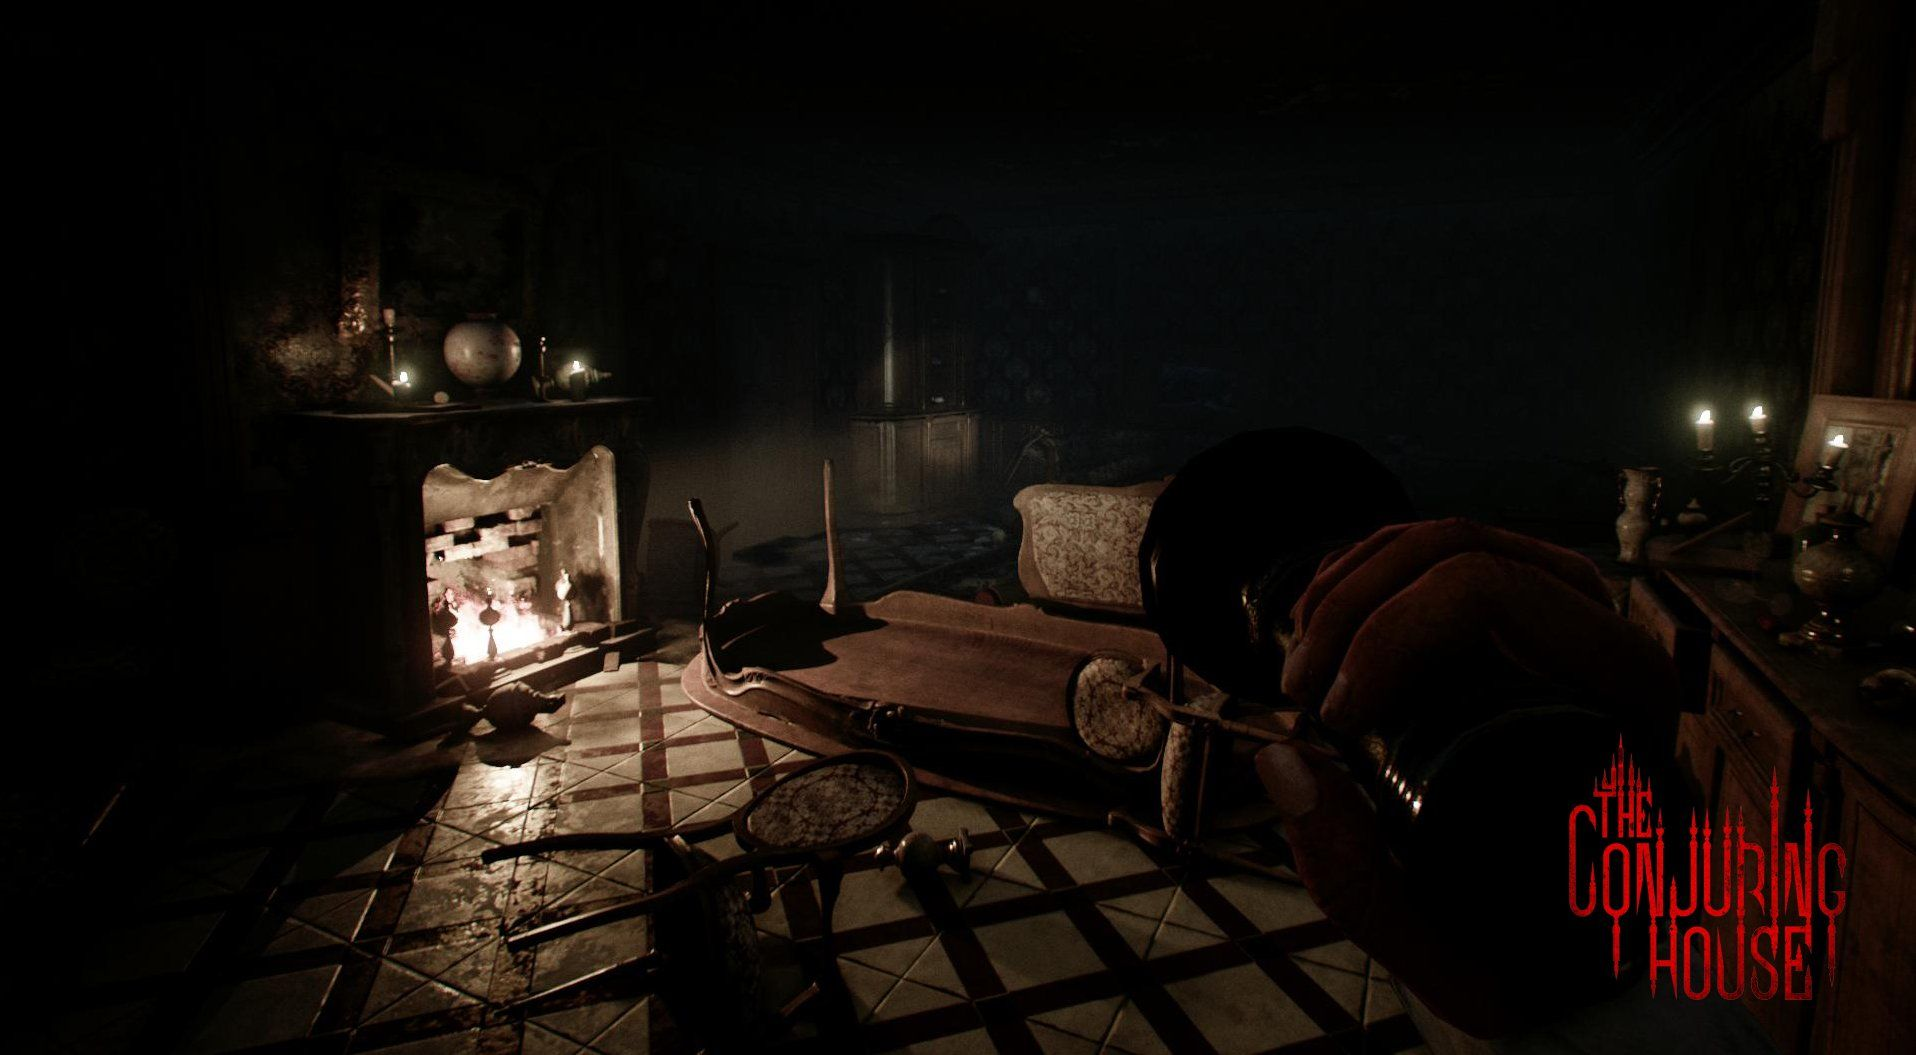 Captivating The Conjuring House   Survival Horror (PC, PS4) #TheConjuringHouse #Terrror  #SurvivalHorror